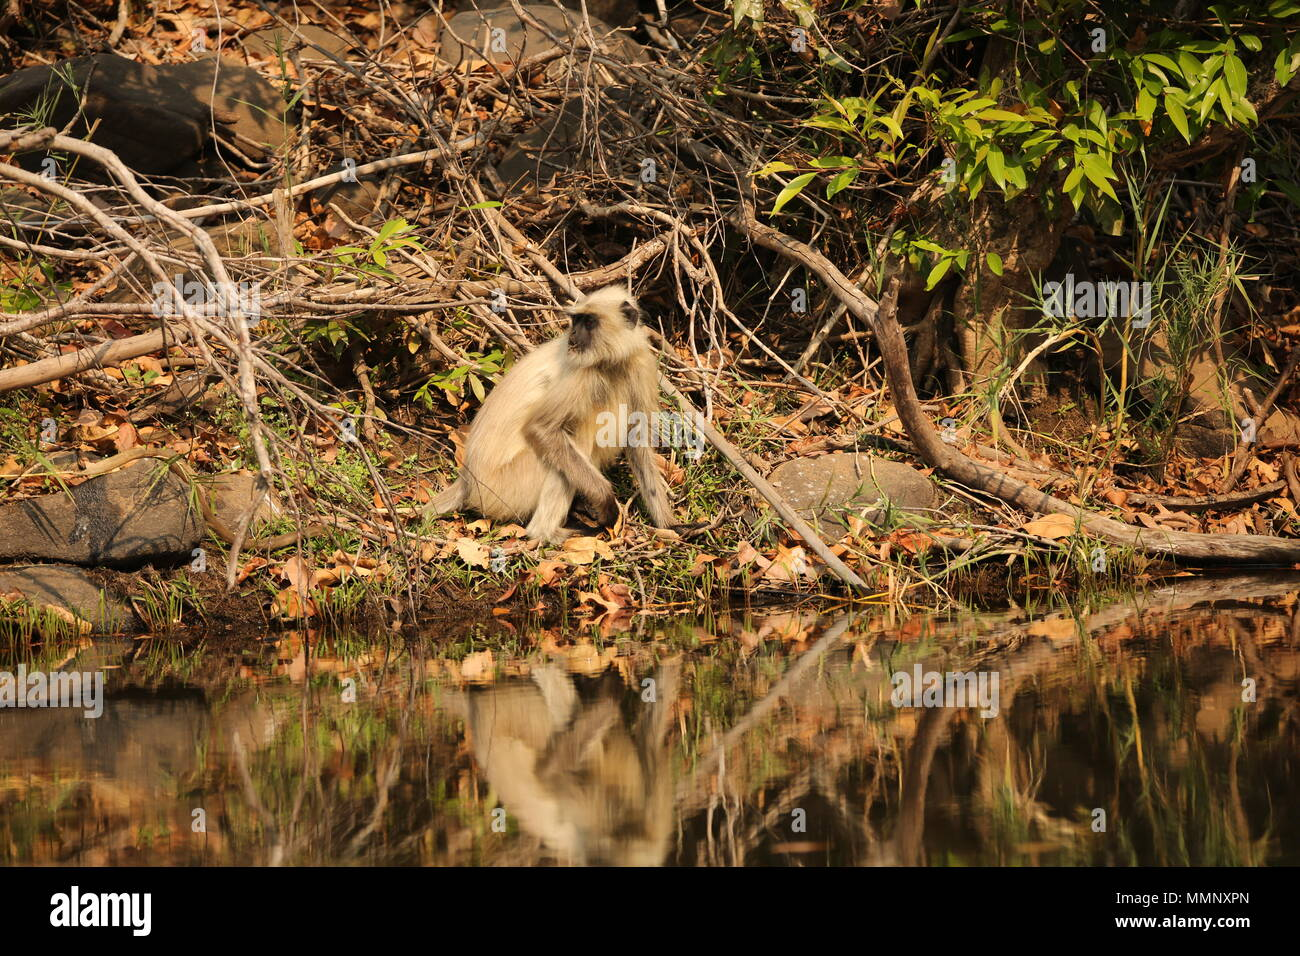 Langur monkeys reflected in watering hole, Bandhavgarh National Park, India Stock Photo